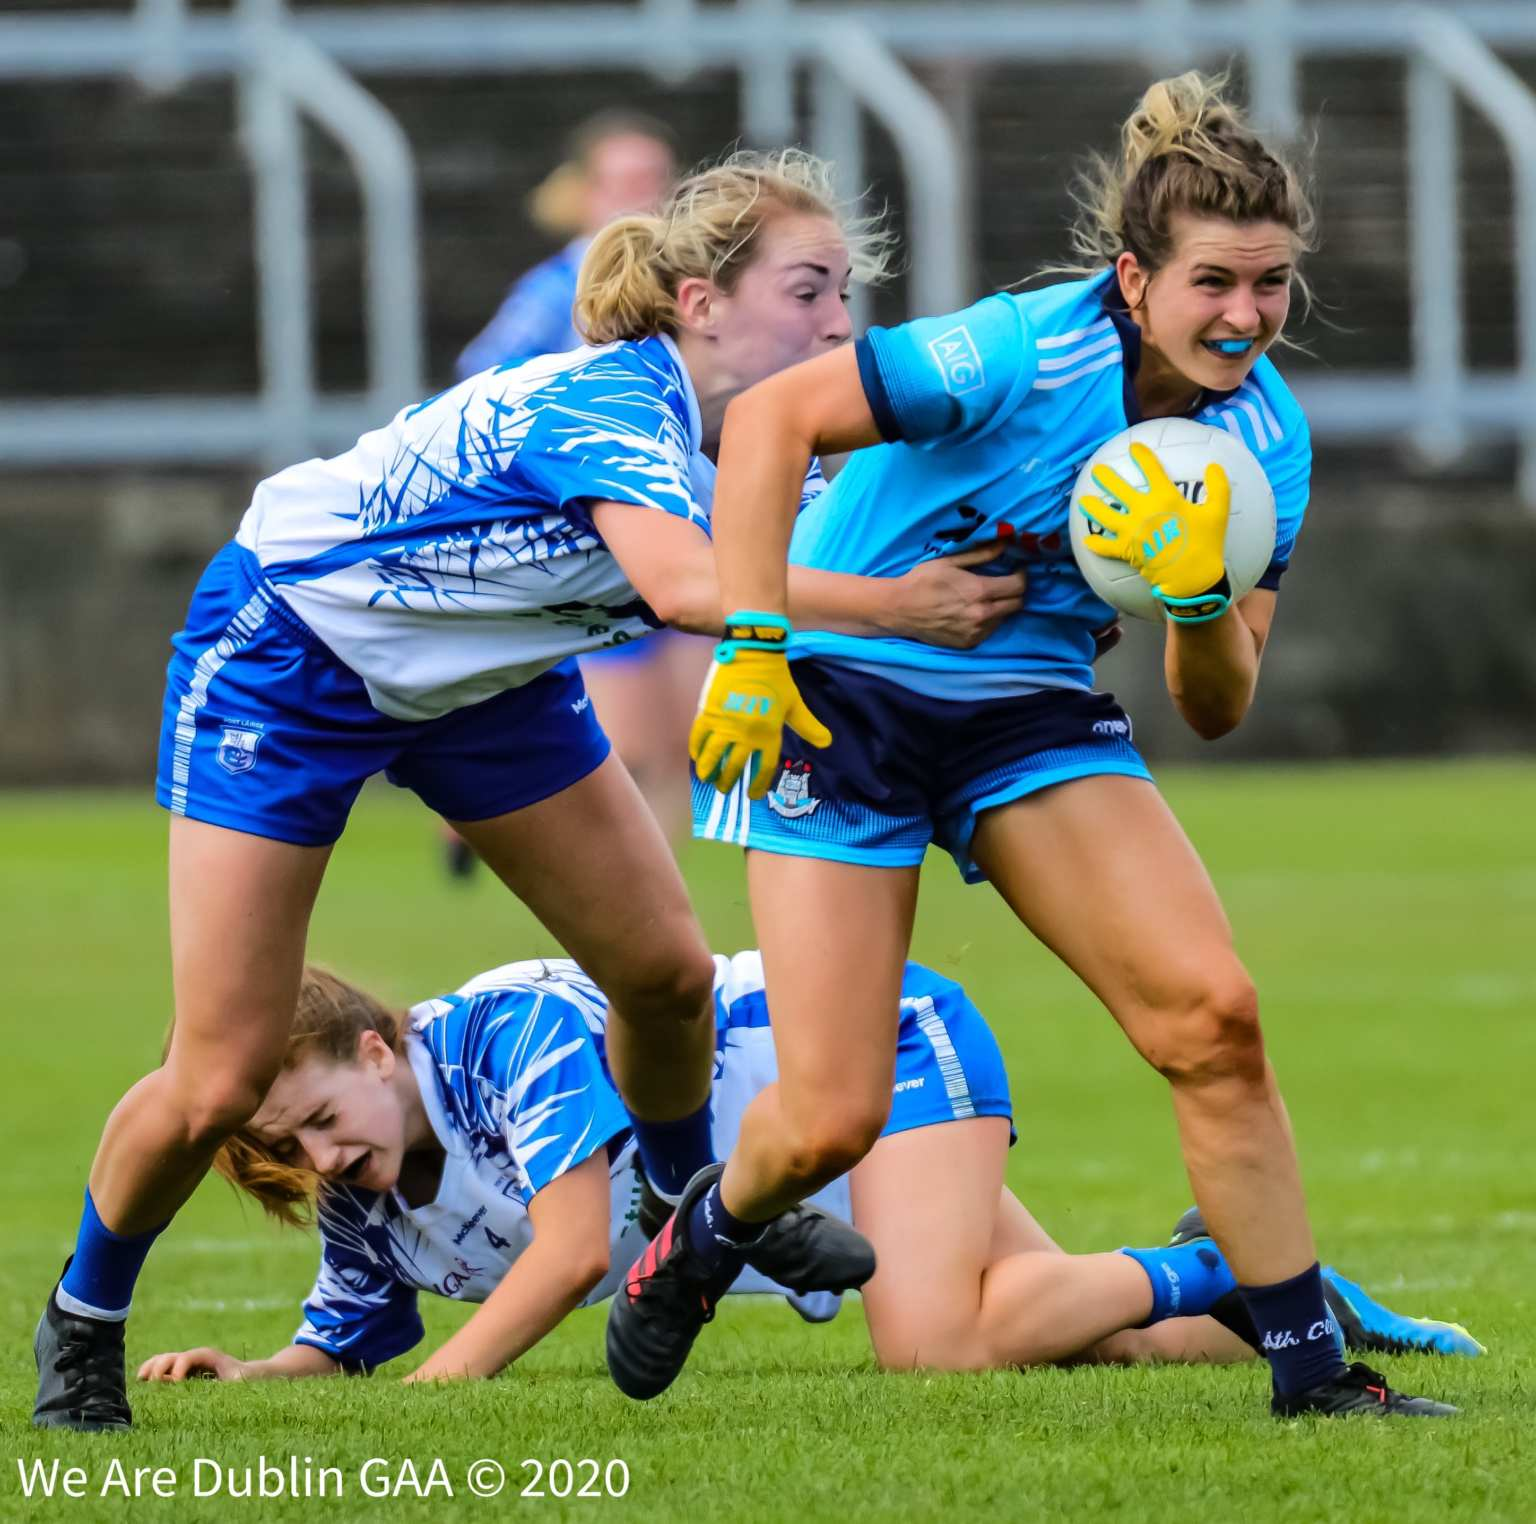 A Dublin player tries to break away from the tackle of a Waterford player, the two teams meet again in the Lidl Ladies NFL Round 5